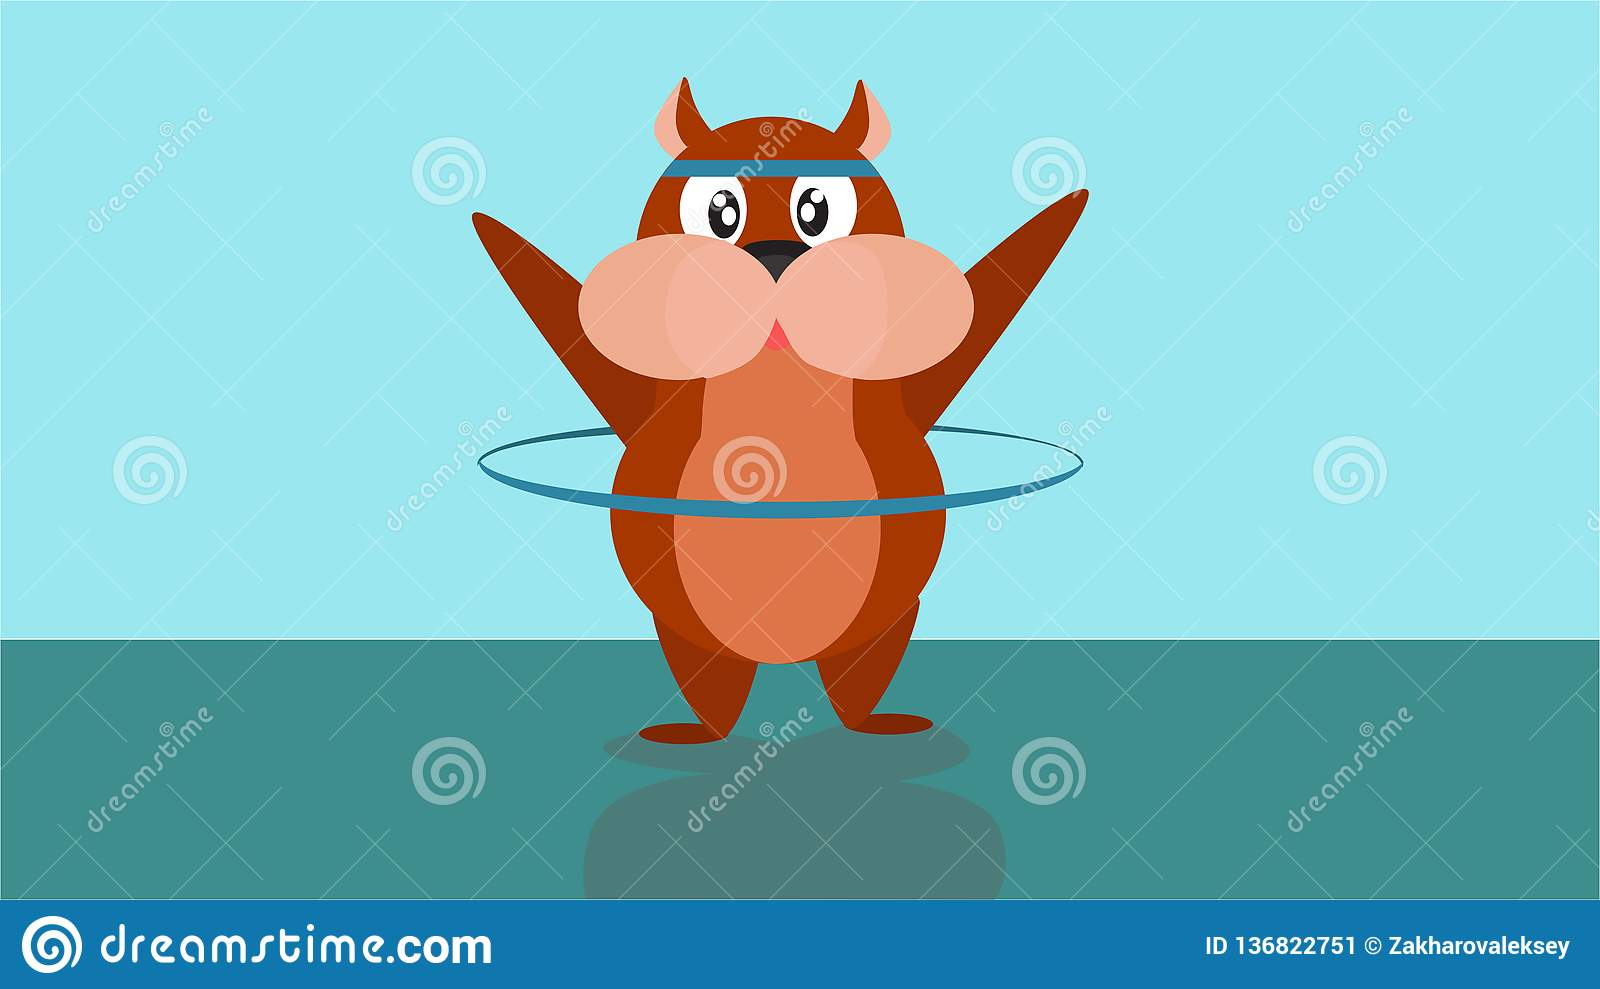 Sticker for messenger app with fun animals. The hamster turns the Hoop